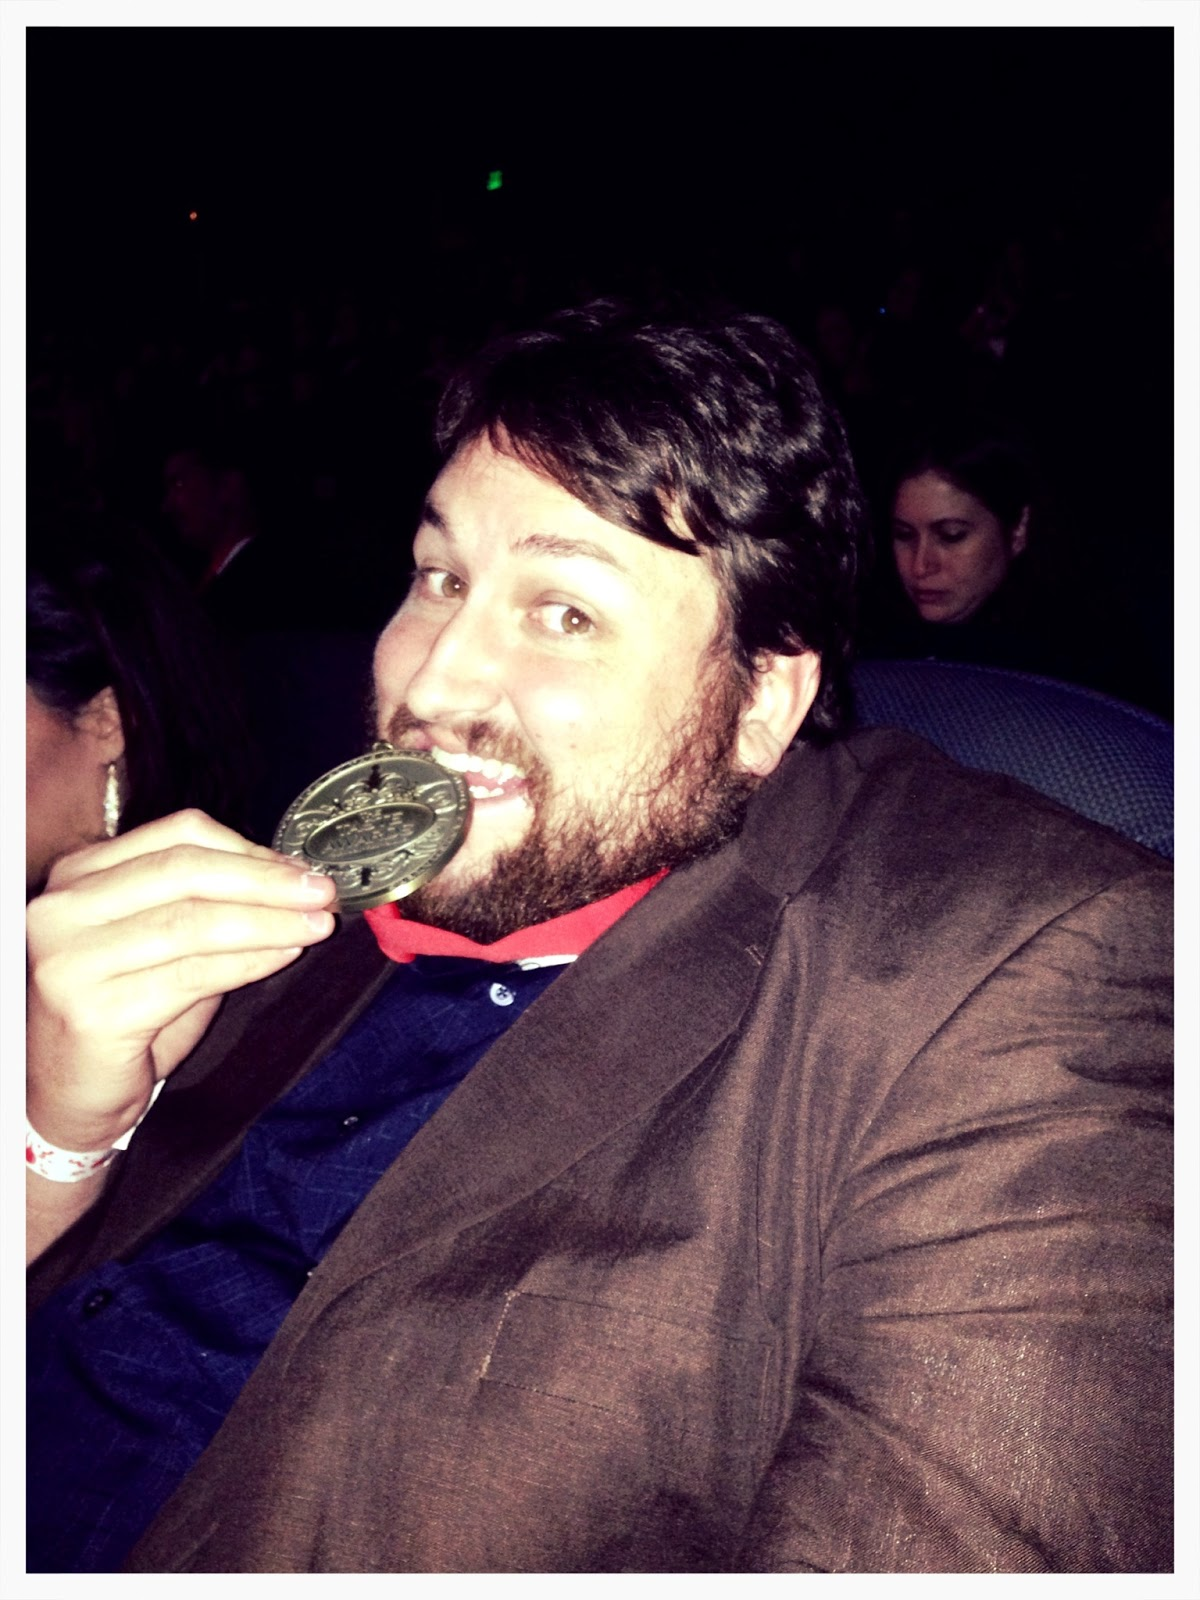 Jay Ducote with the Taste Award